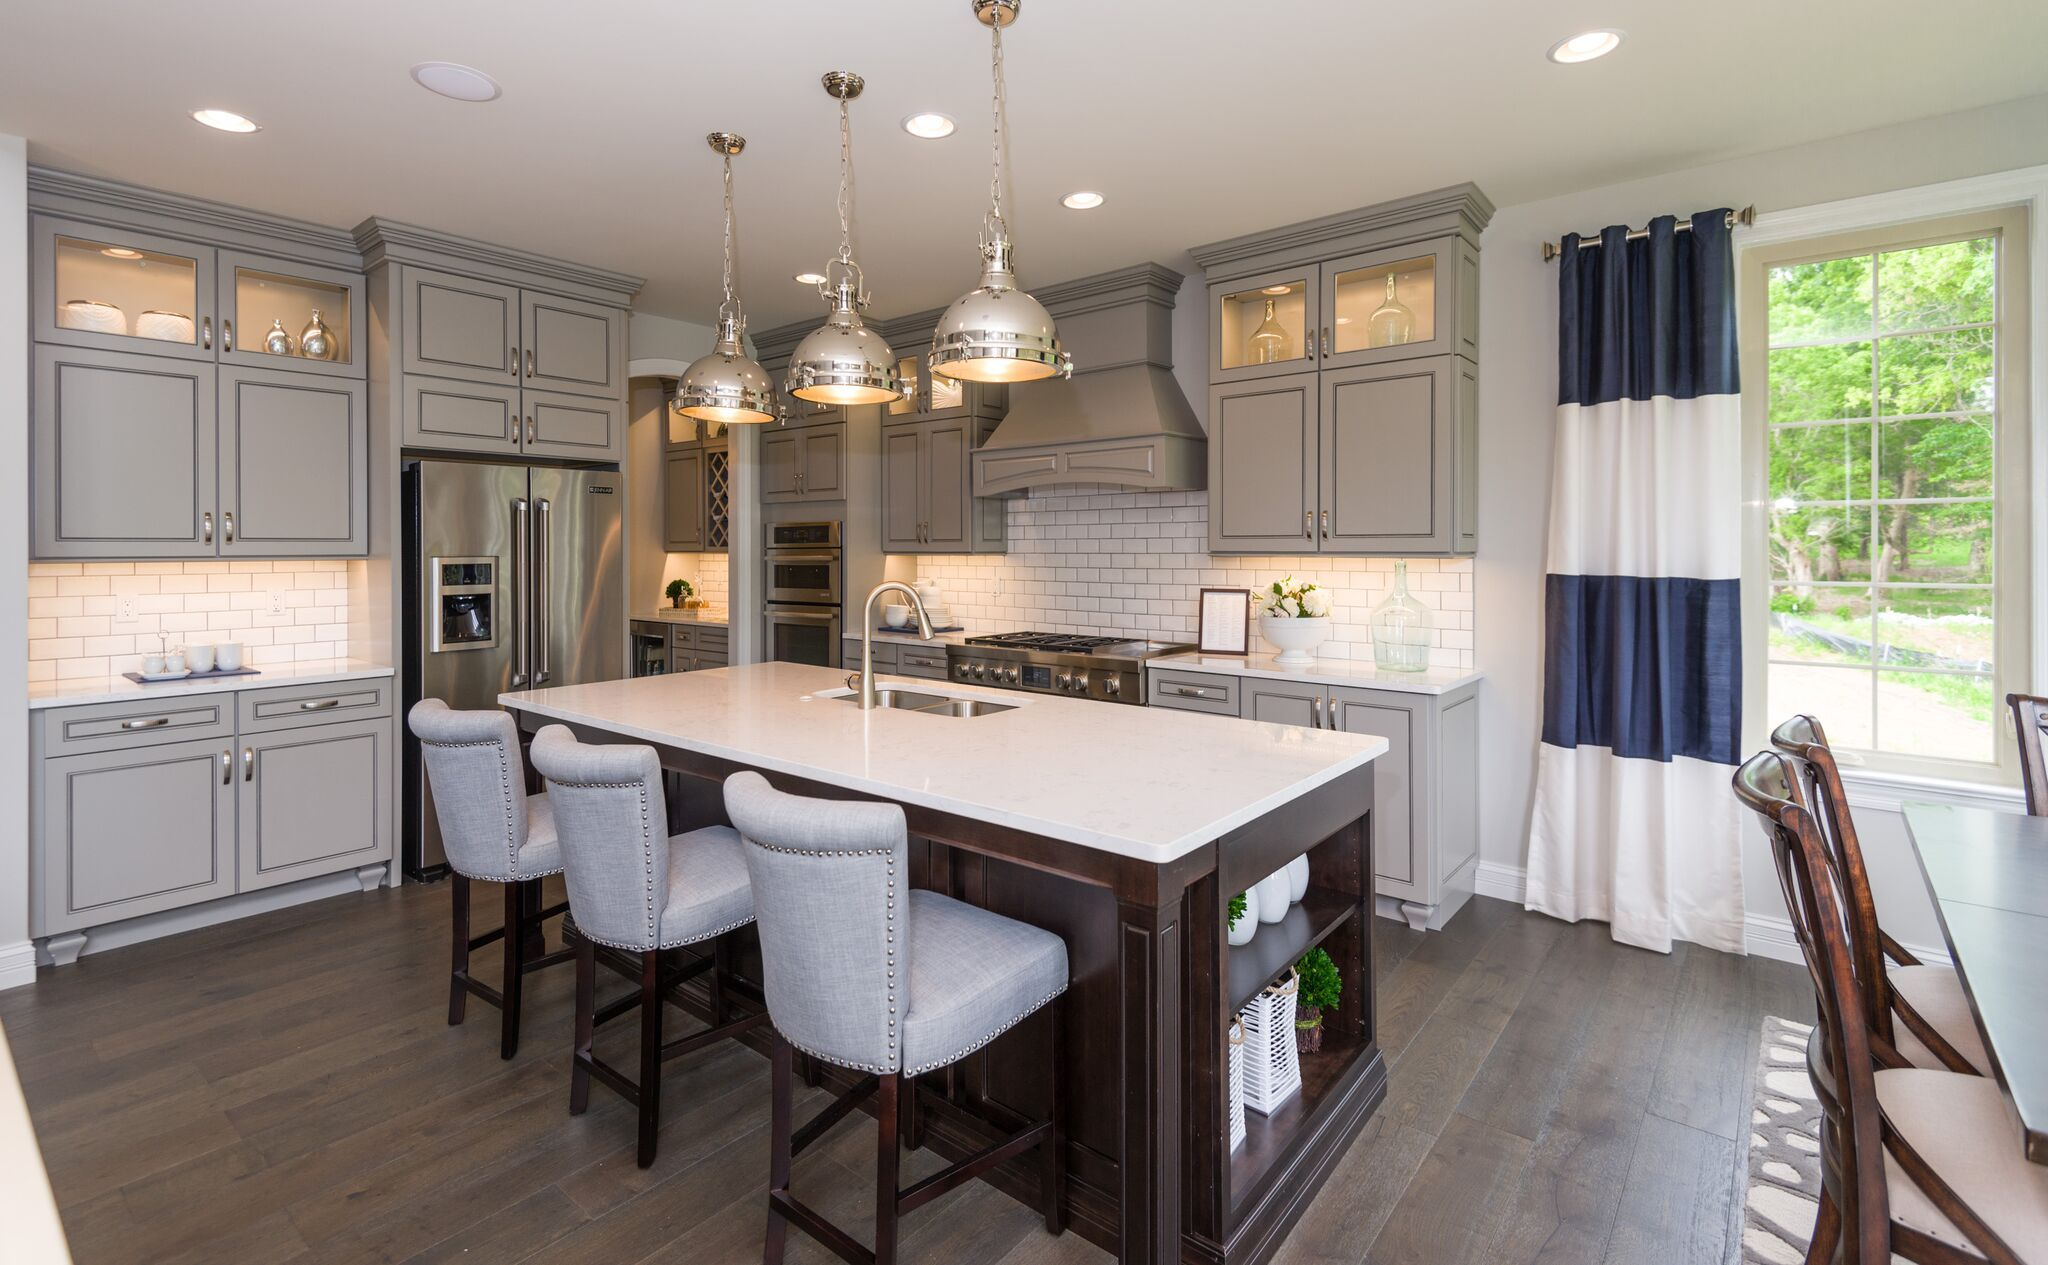 Best 5 Kitchen Design Trends To Take From Model Homes Diy 400 x 300